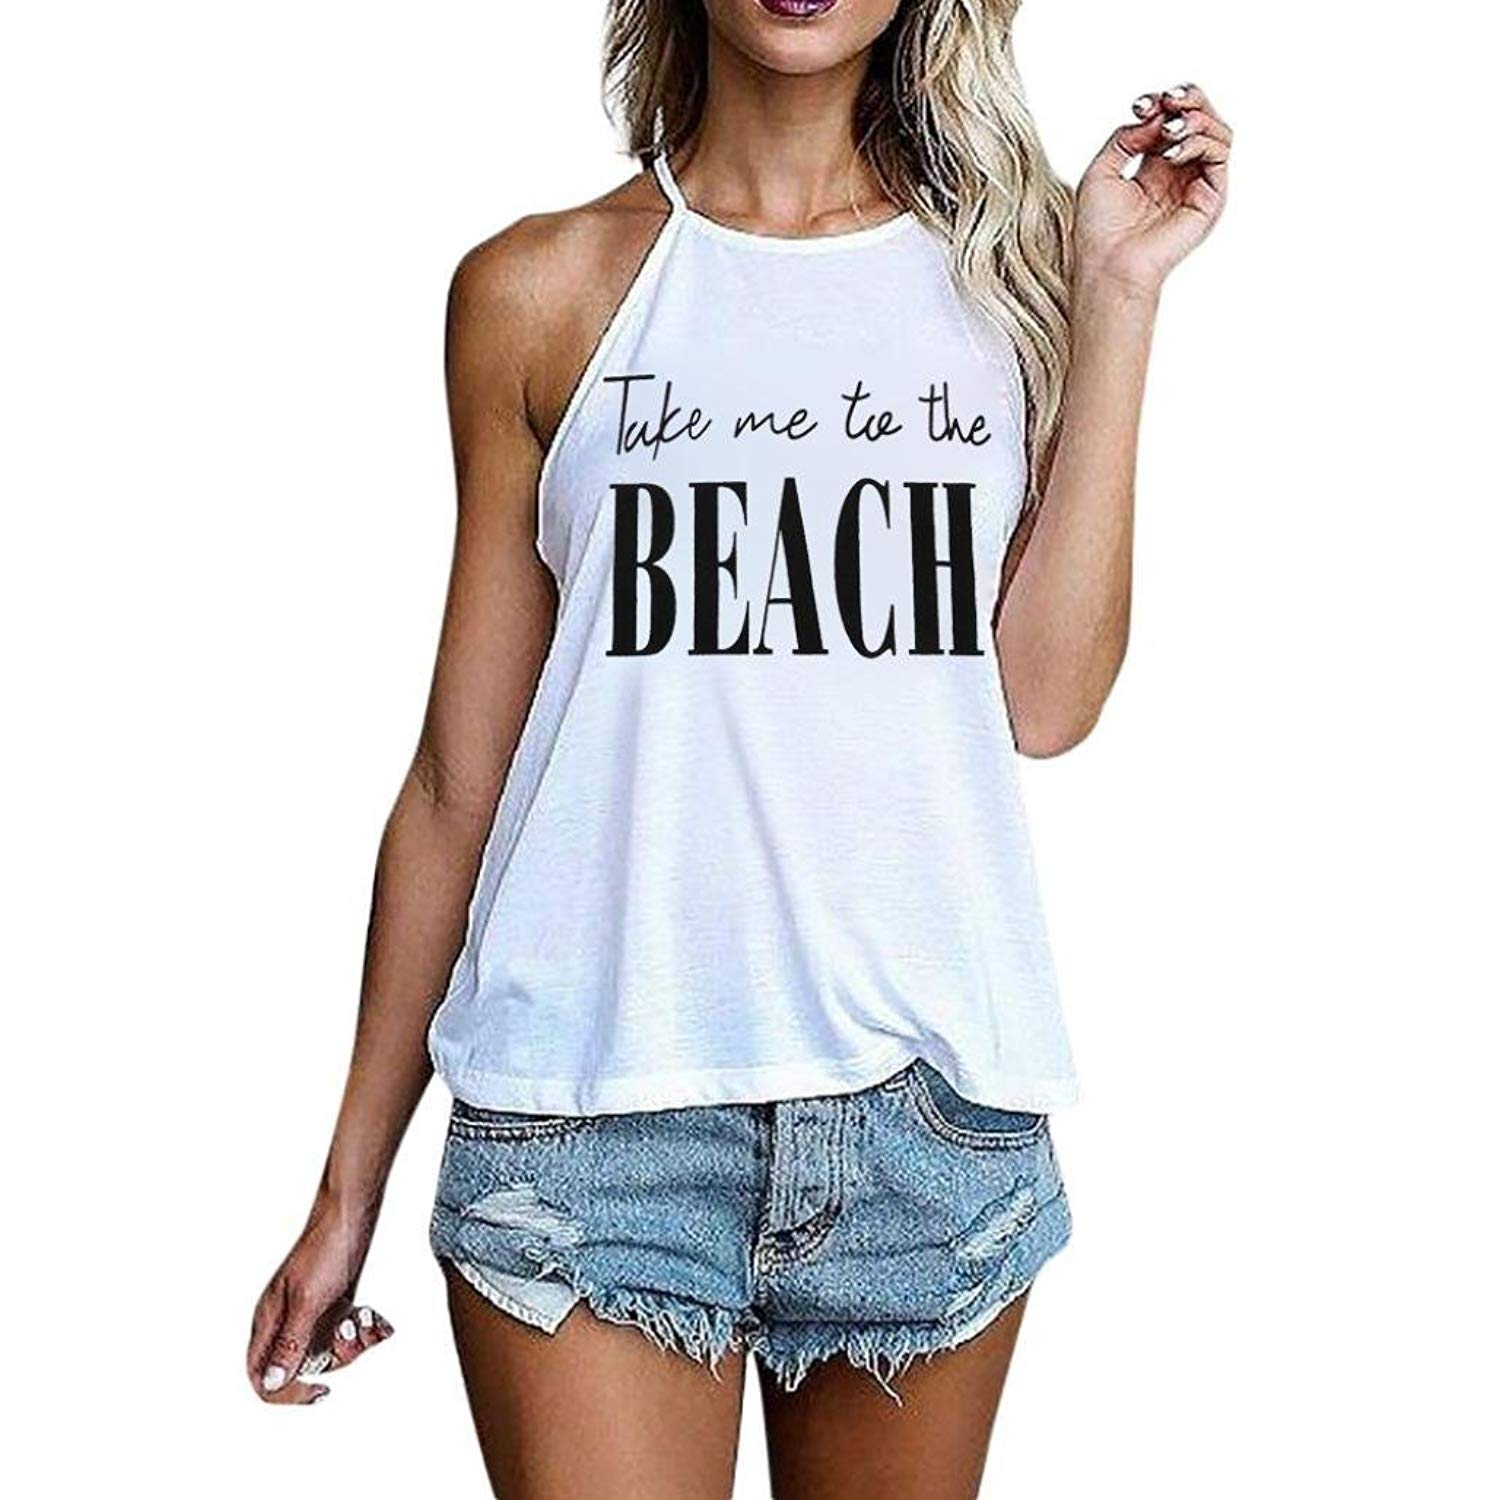 57c69dadf85 Get Quotations · Siaokim Tops For Women Hot Sale Women Tank Tops Halter  Casual Sleeveless Take Me to The